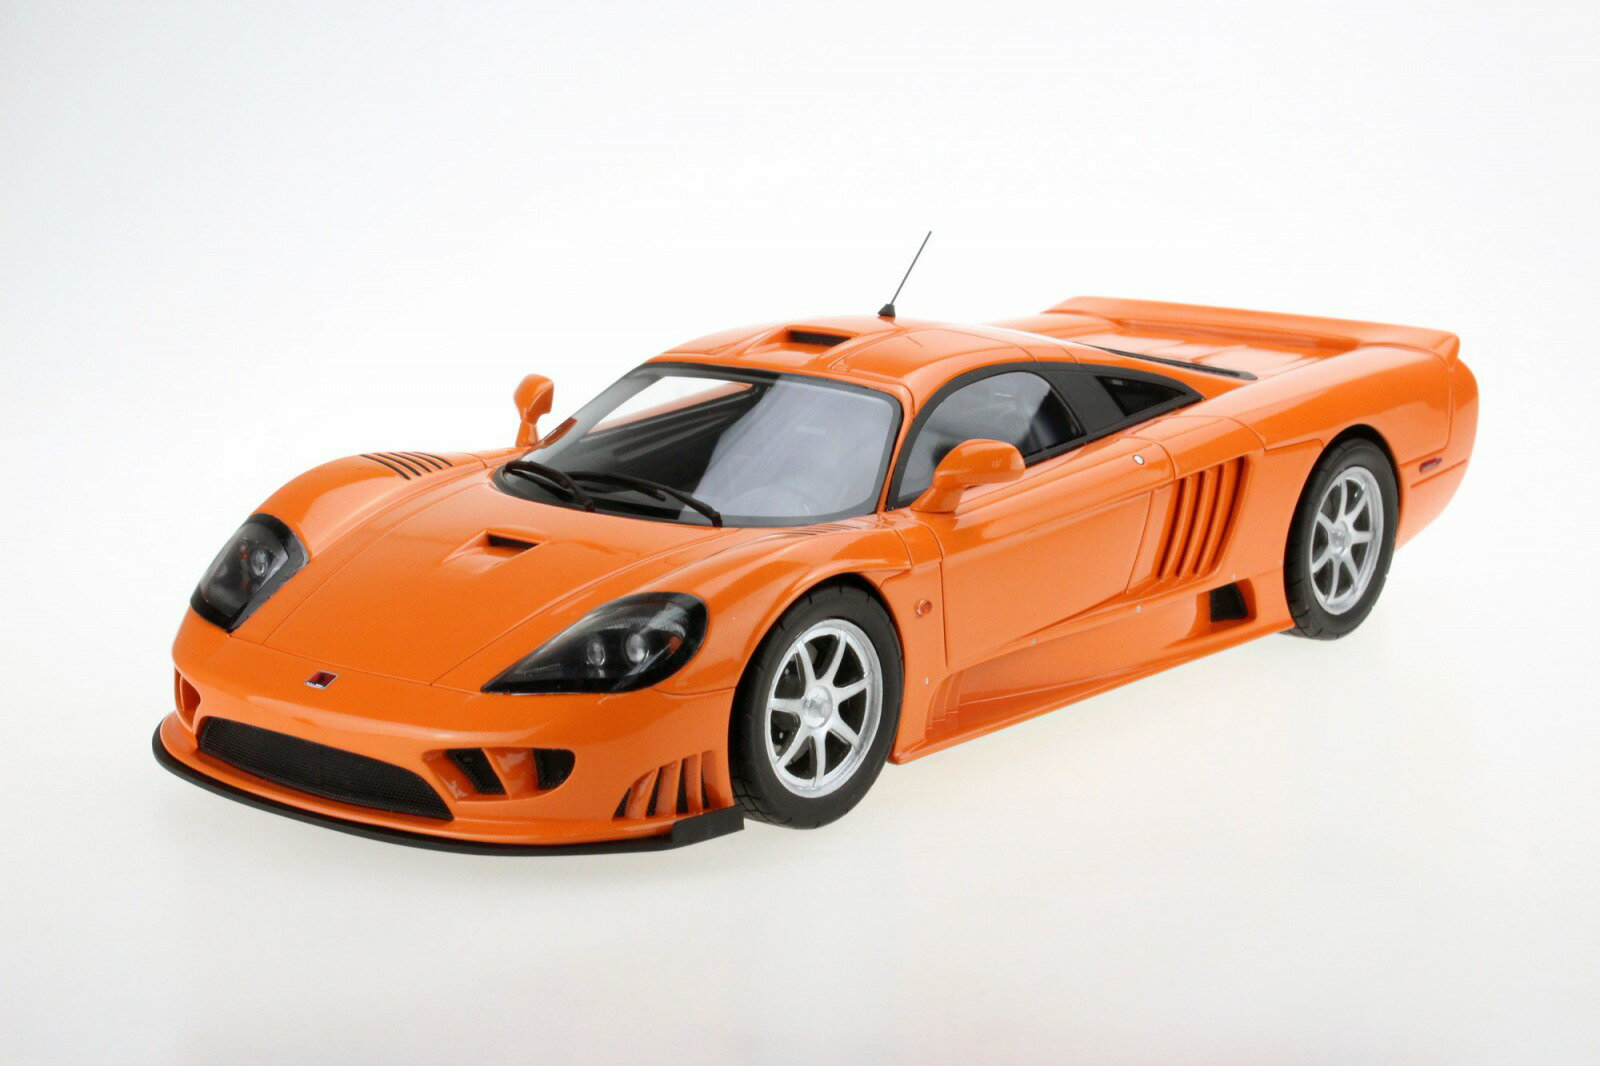 Top Marques トップマルケス 1/18 ミニカー レジン プロポーションモデル 2004年モデル サリーン S7 Twin TurboSaleen S7 TWIN TURBO 2004 1/18 by Top Marques